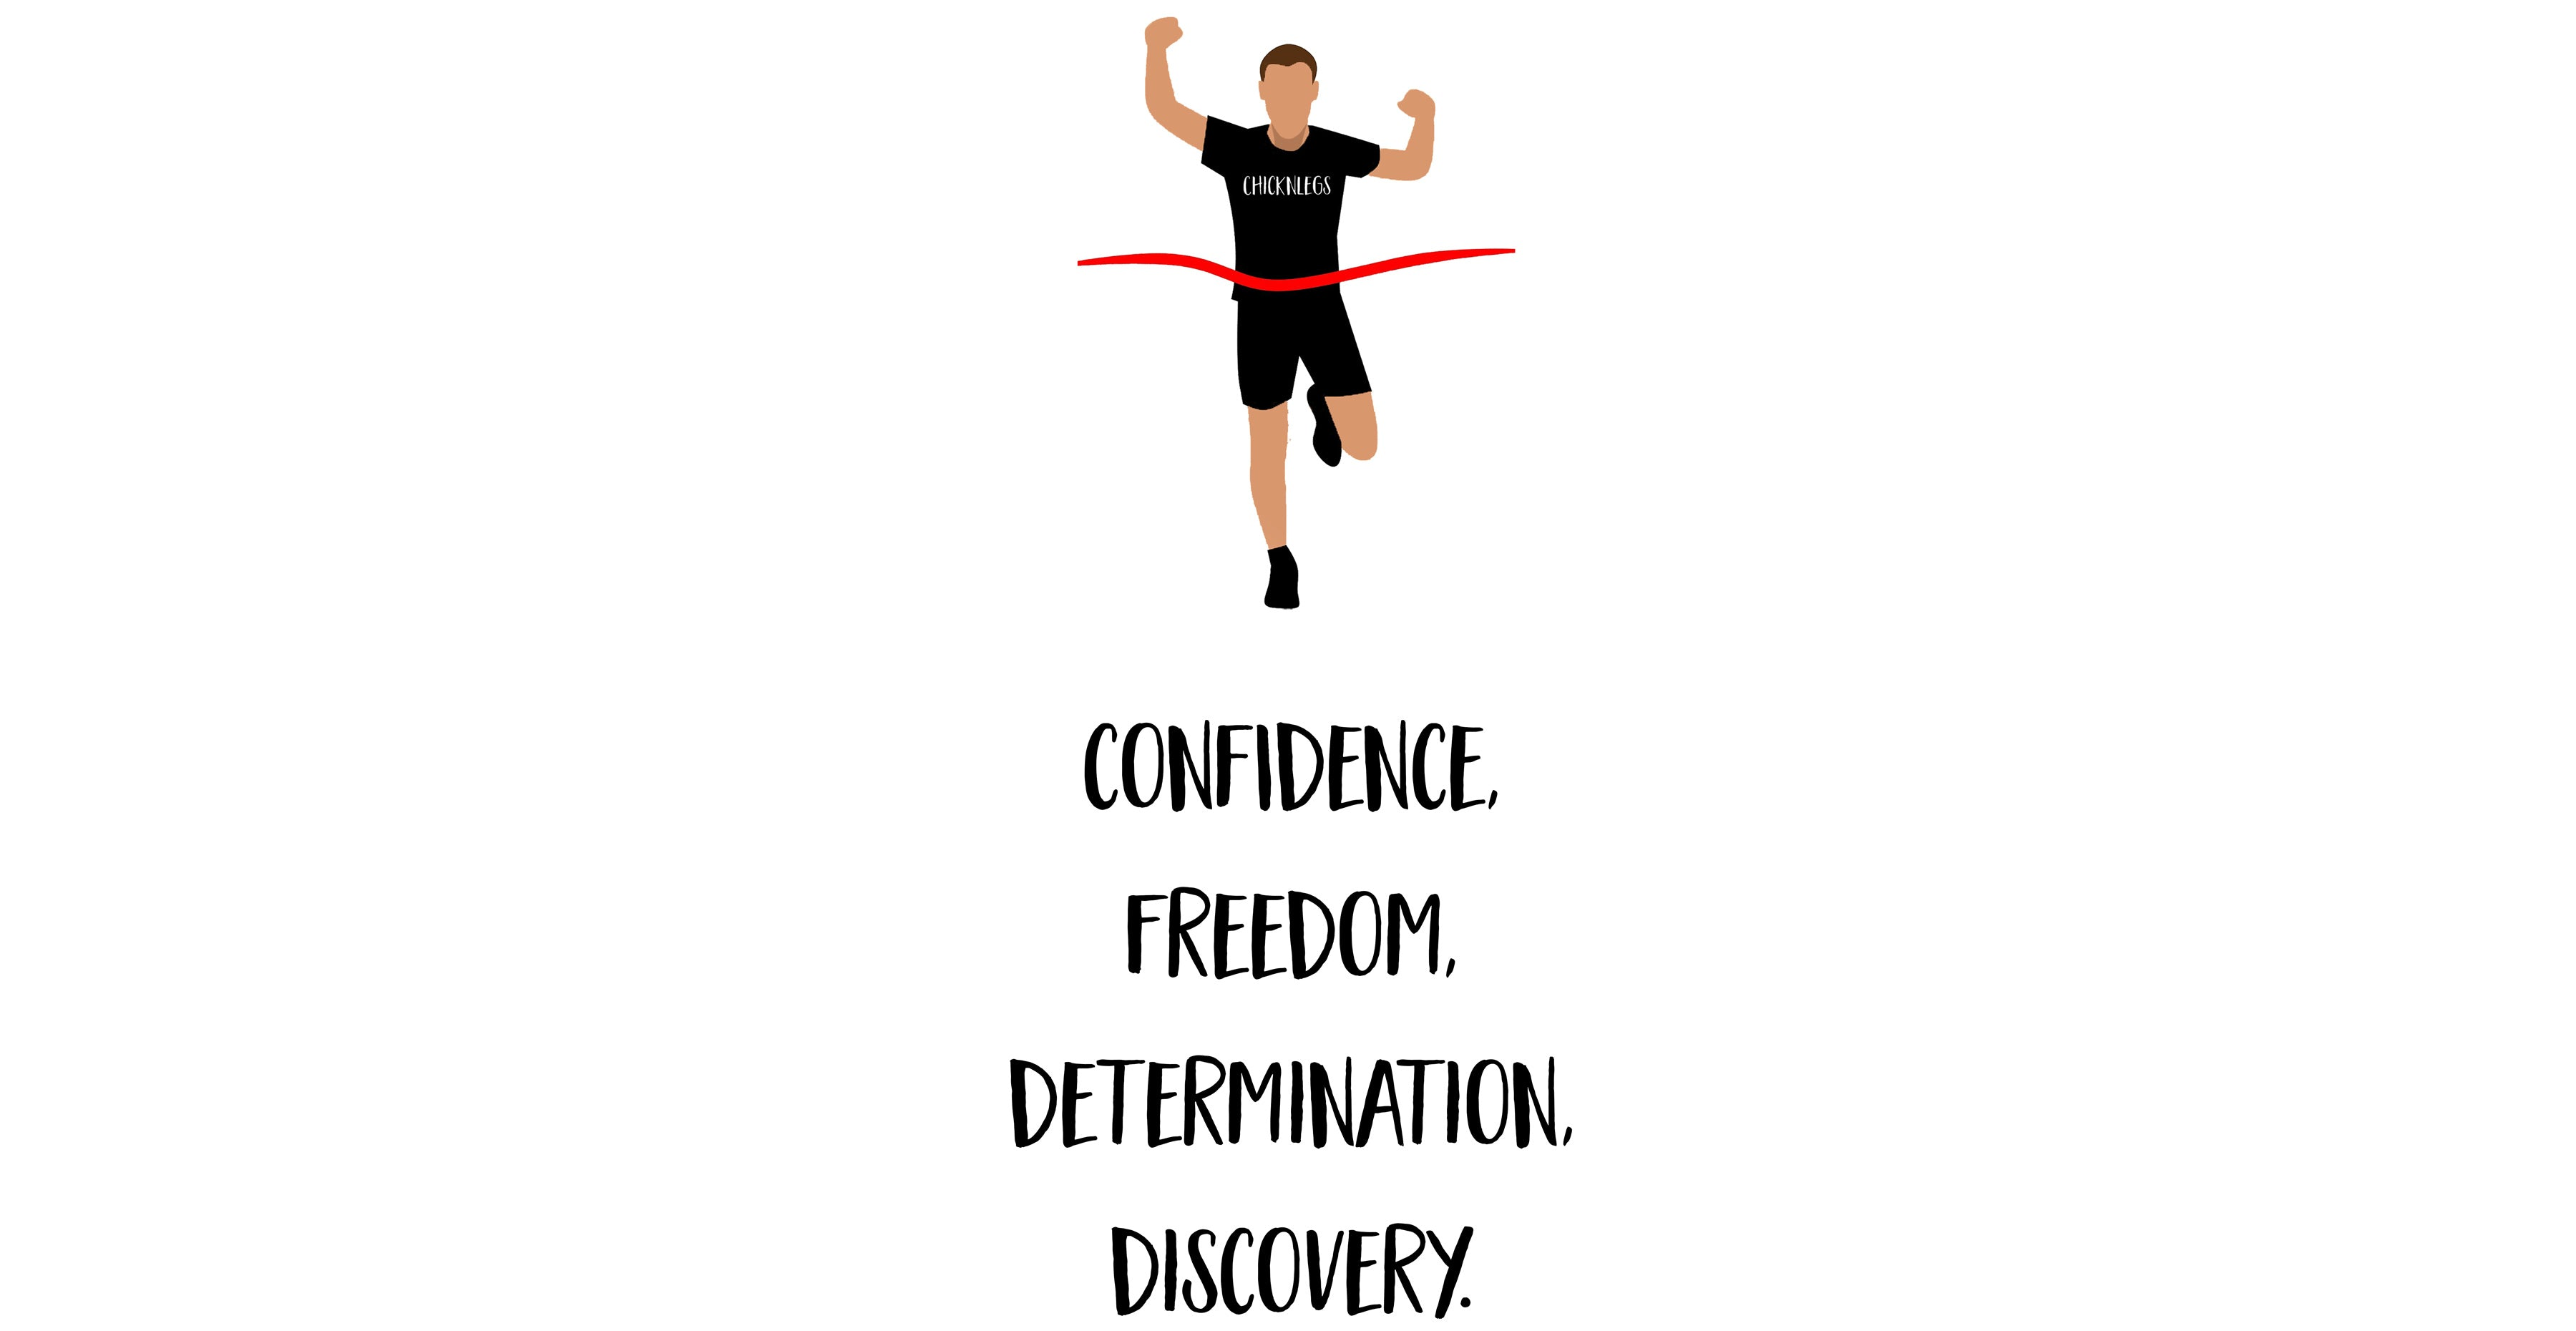 Confidence, freedom, determination, discovery.